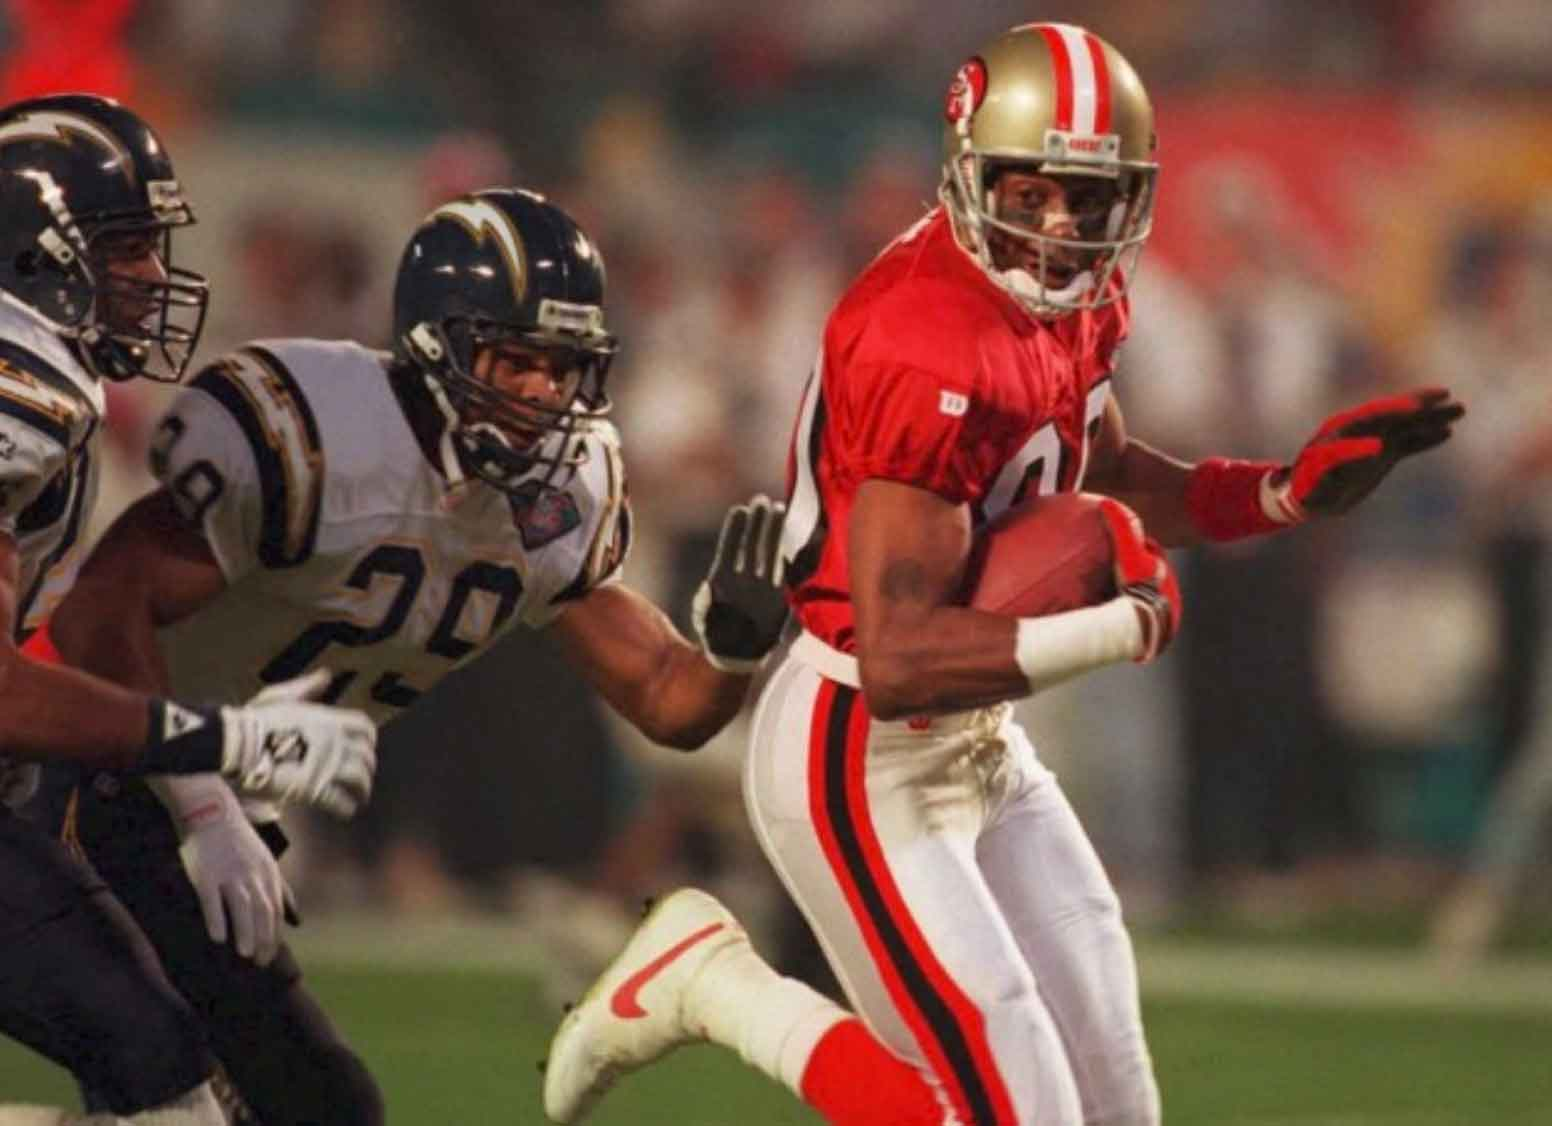 Jerry Rice, wide receiver: giocatori football americano